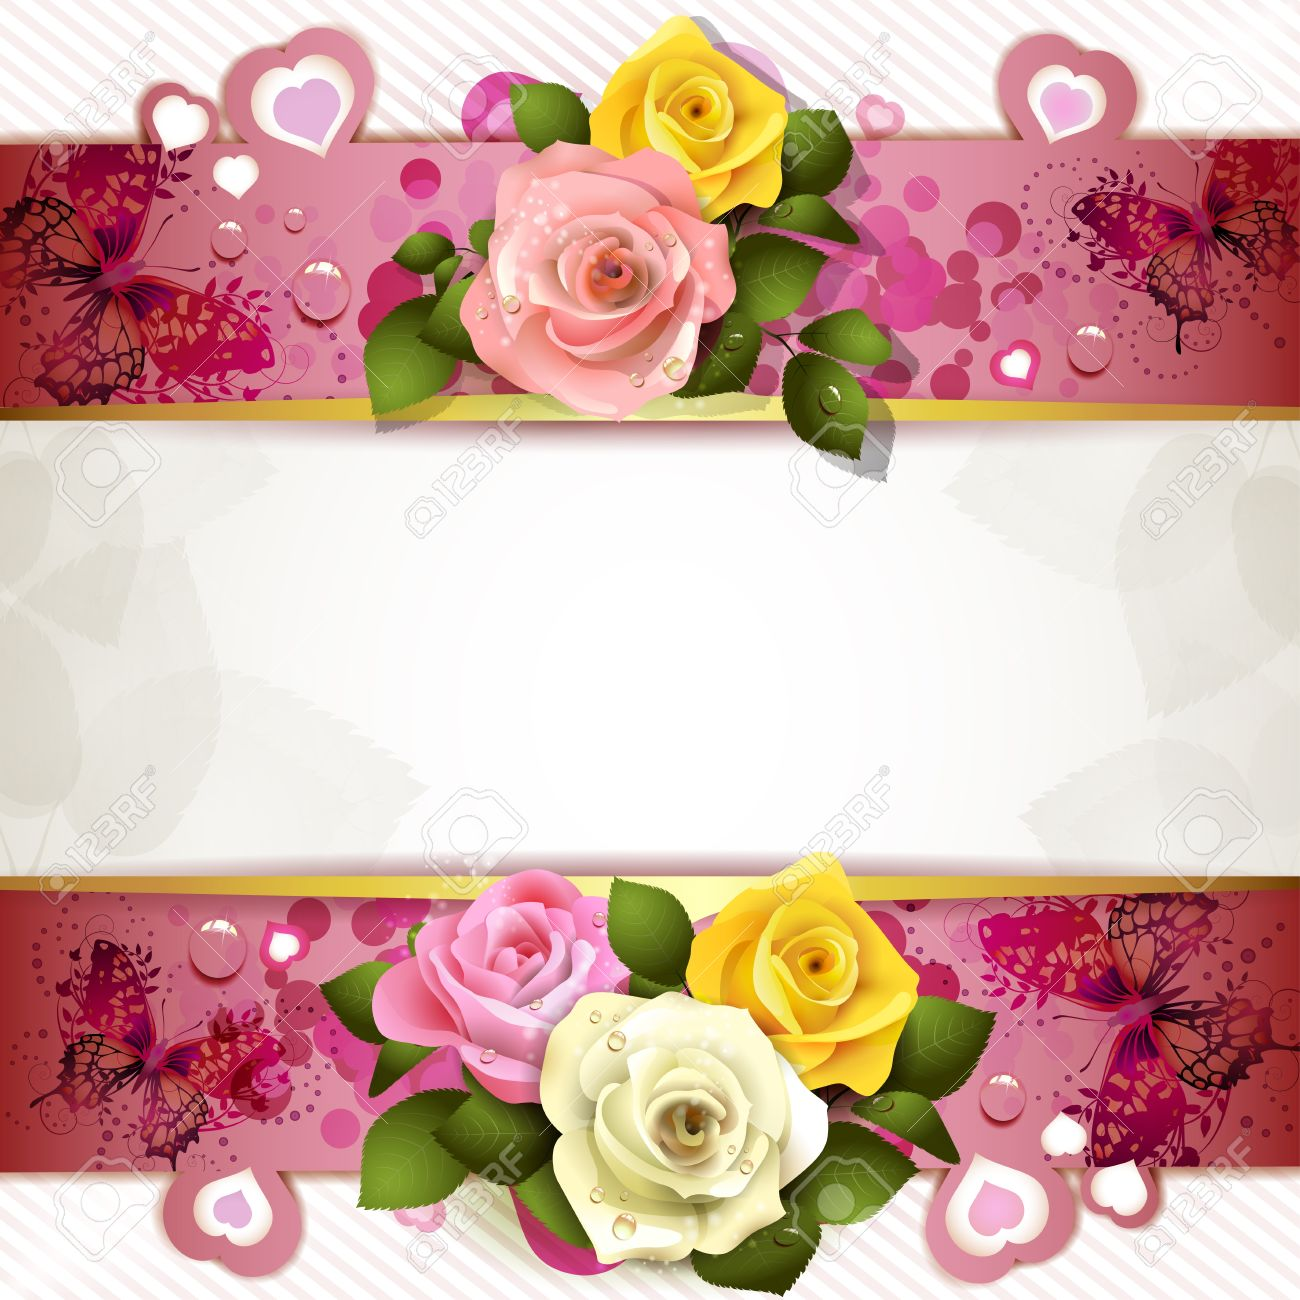 background with butterflies hearts and roses for valentine s